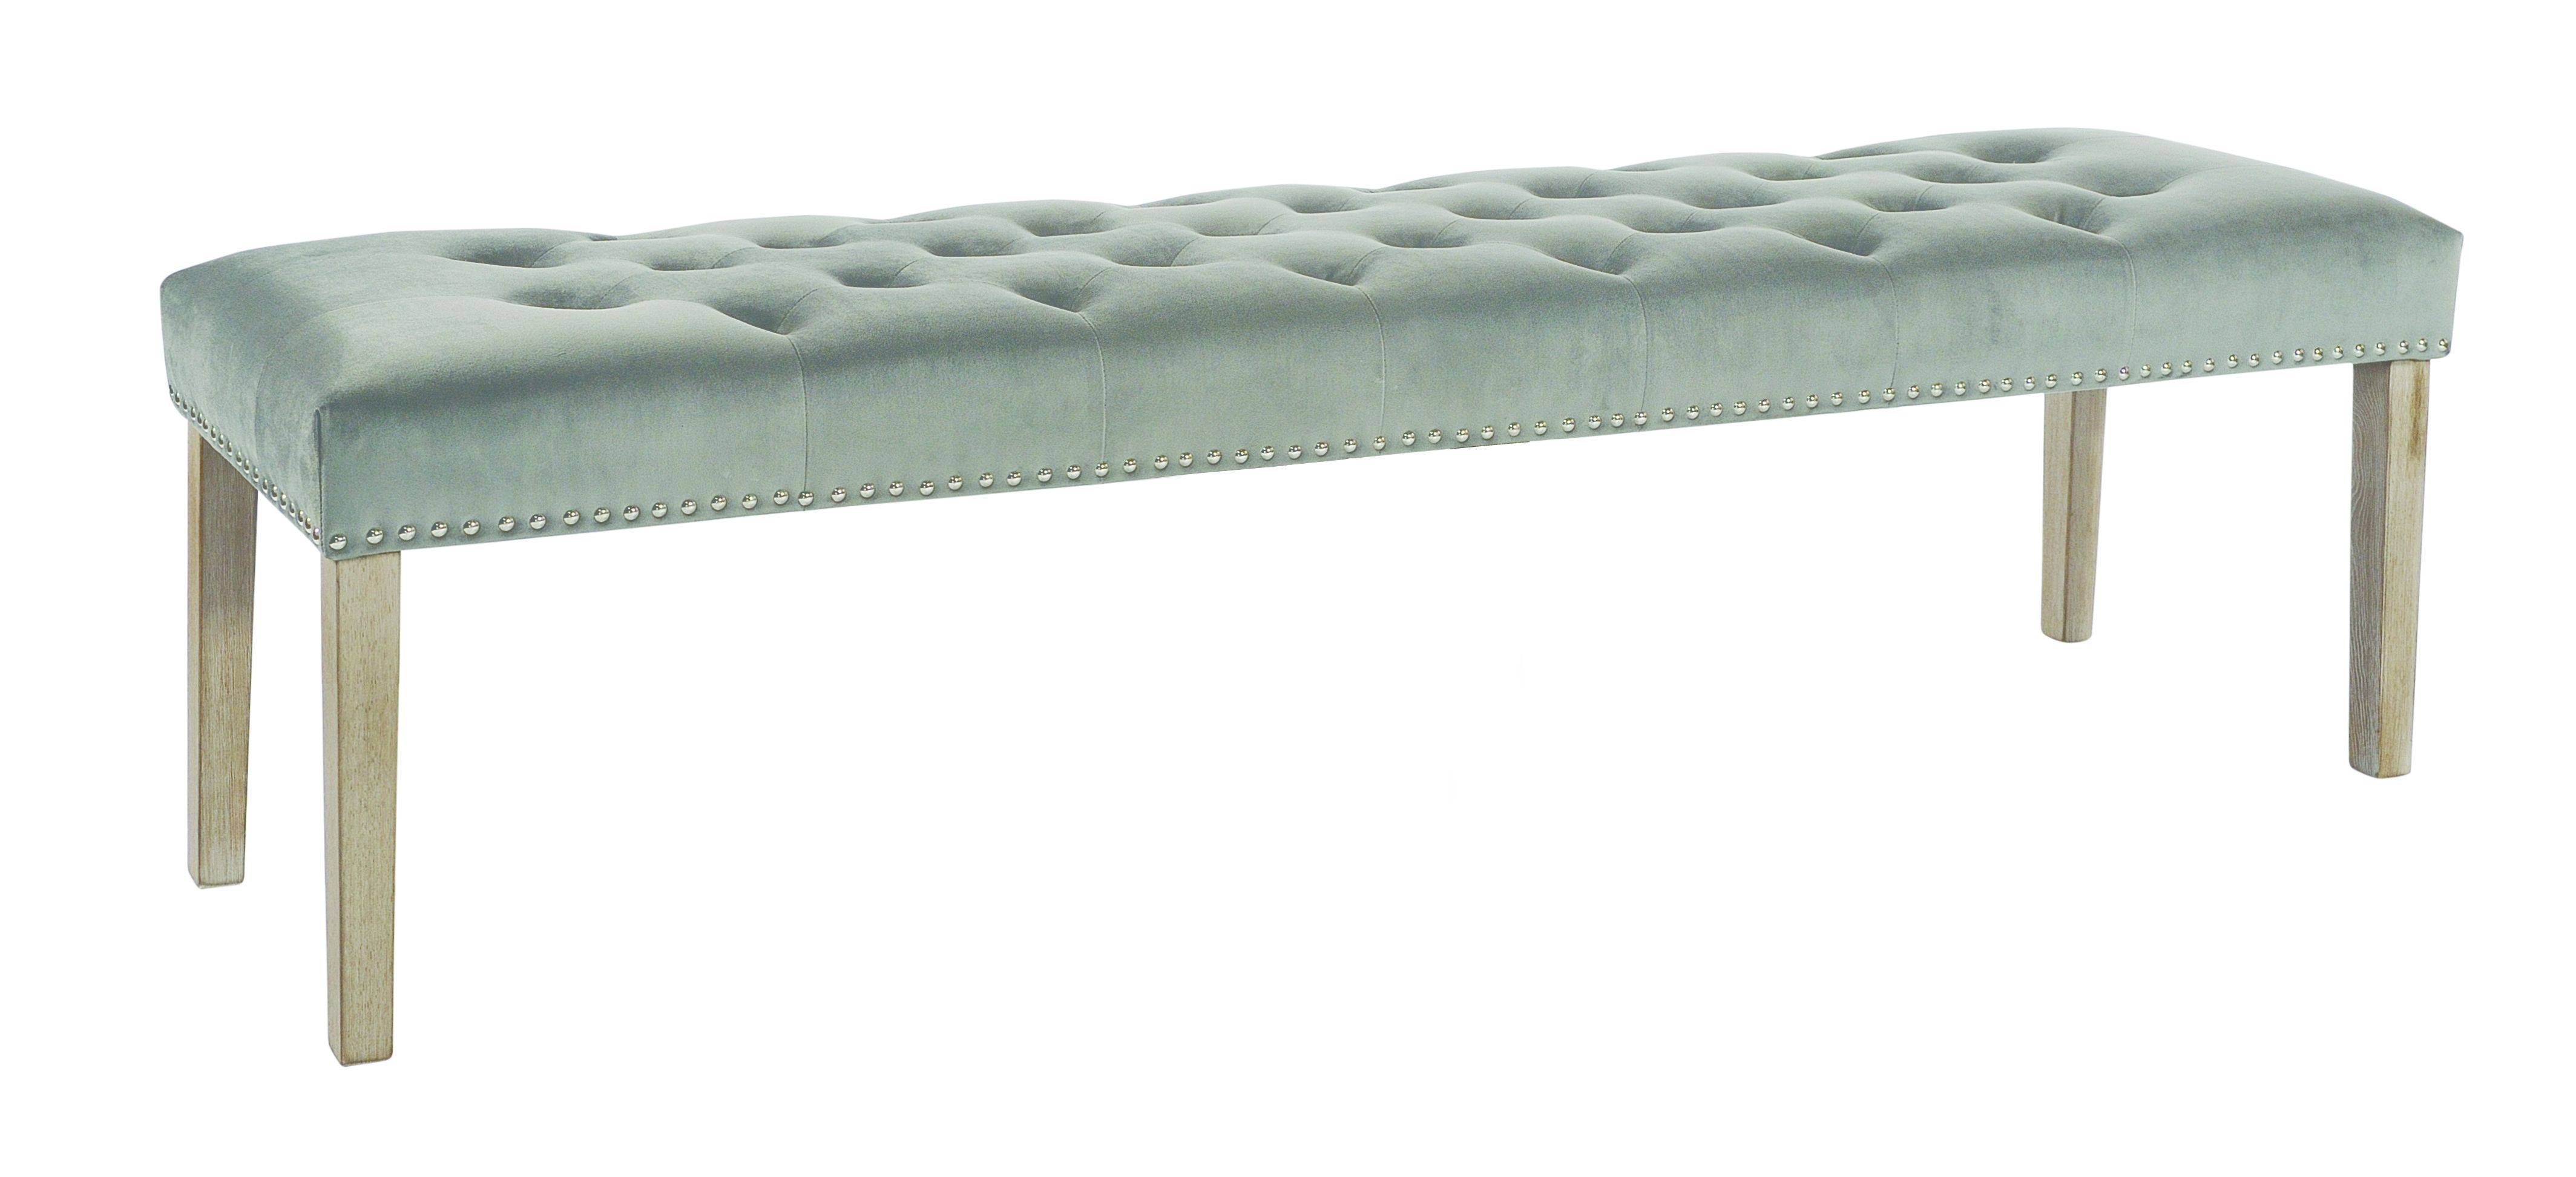 LARGE VICKY BENCH Grey Upholstered bench